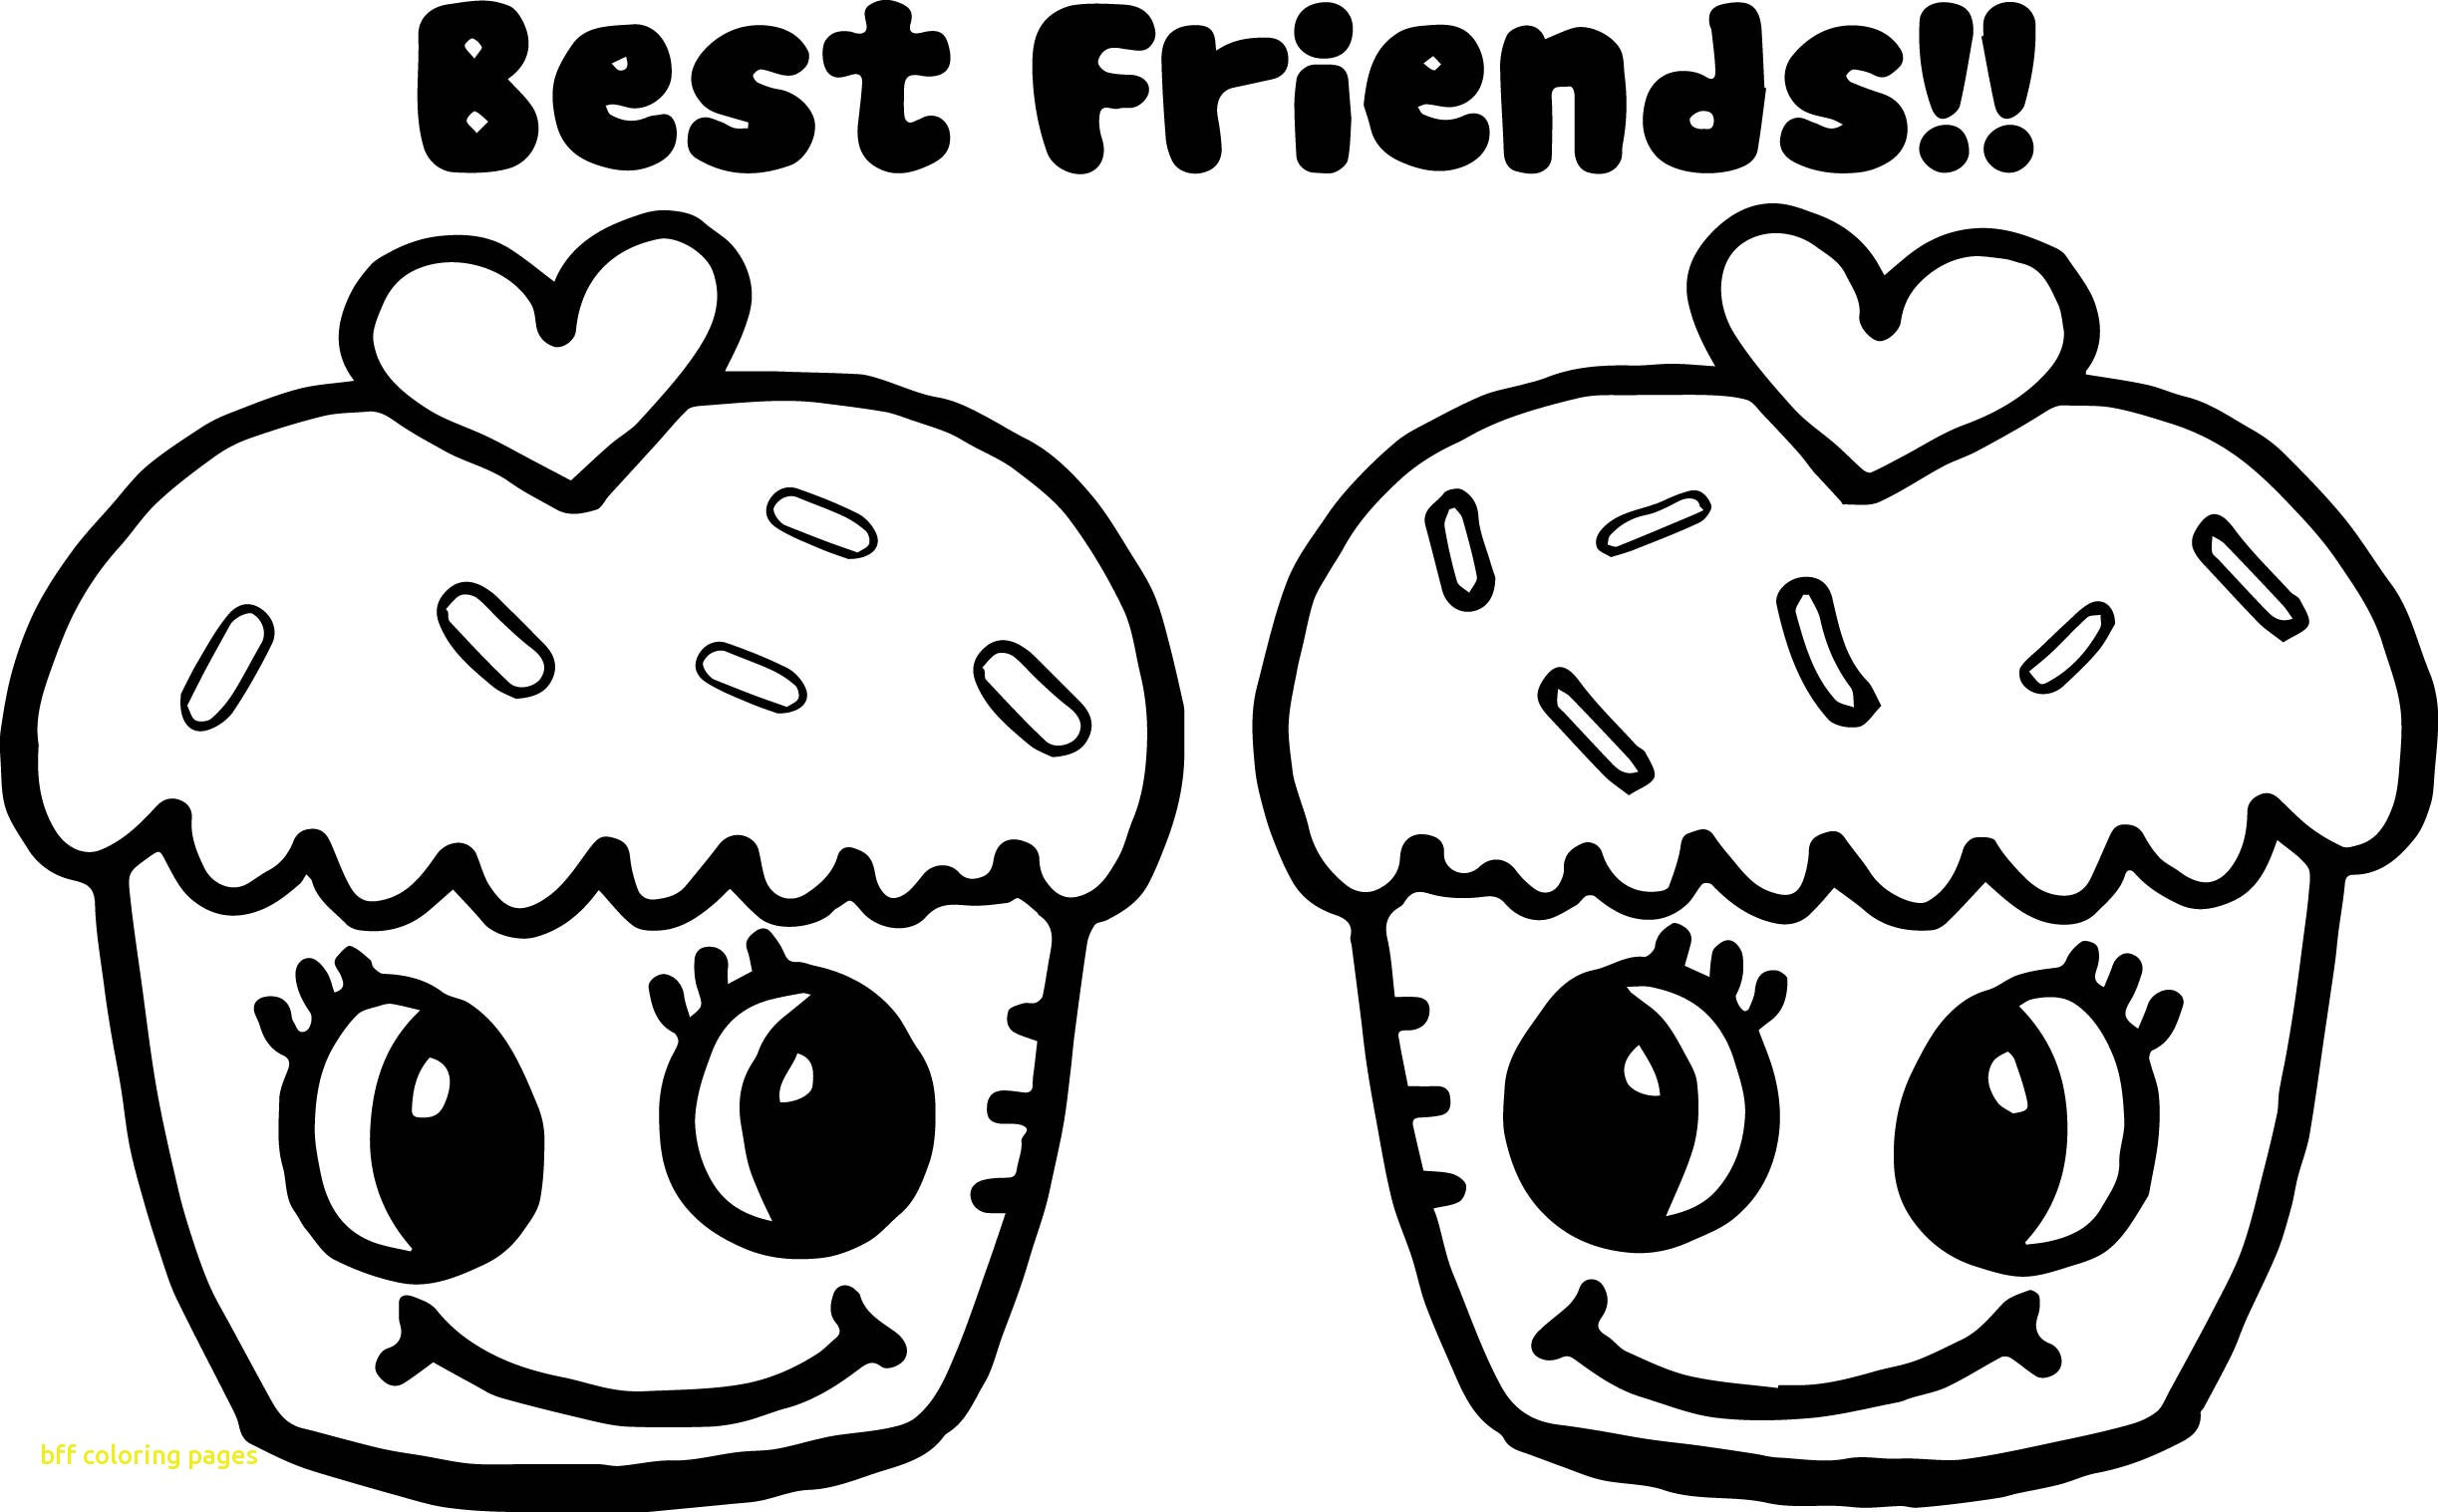 Bff Coloring Sheets For Girls  Now Best Friend Coloring Pages For Girls Bff With